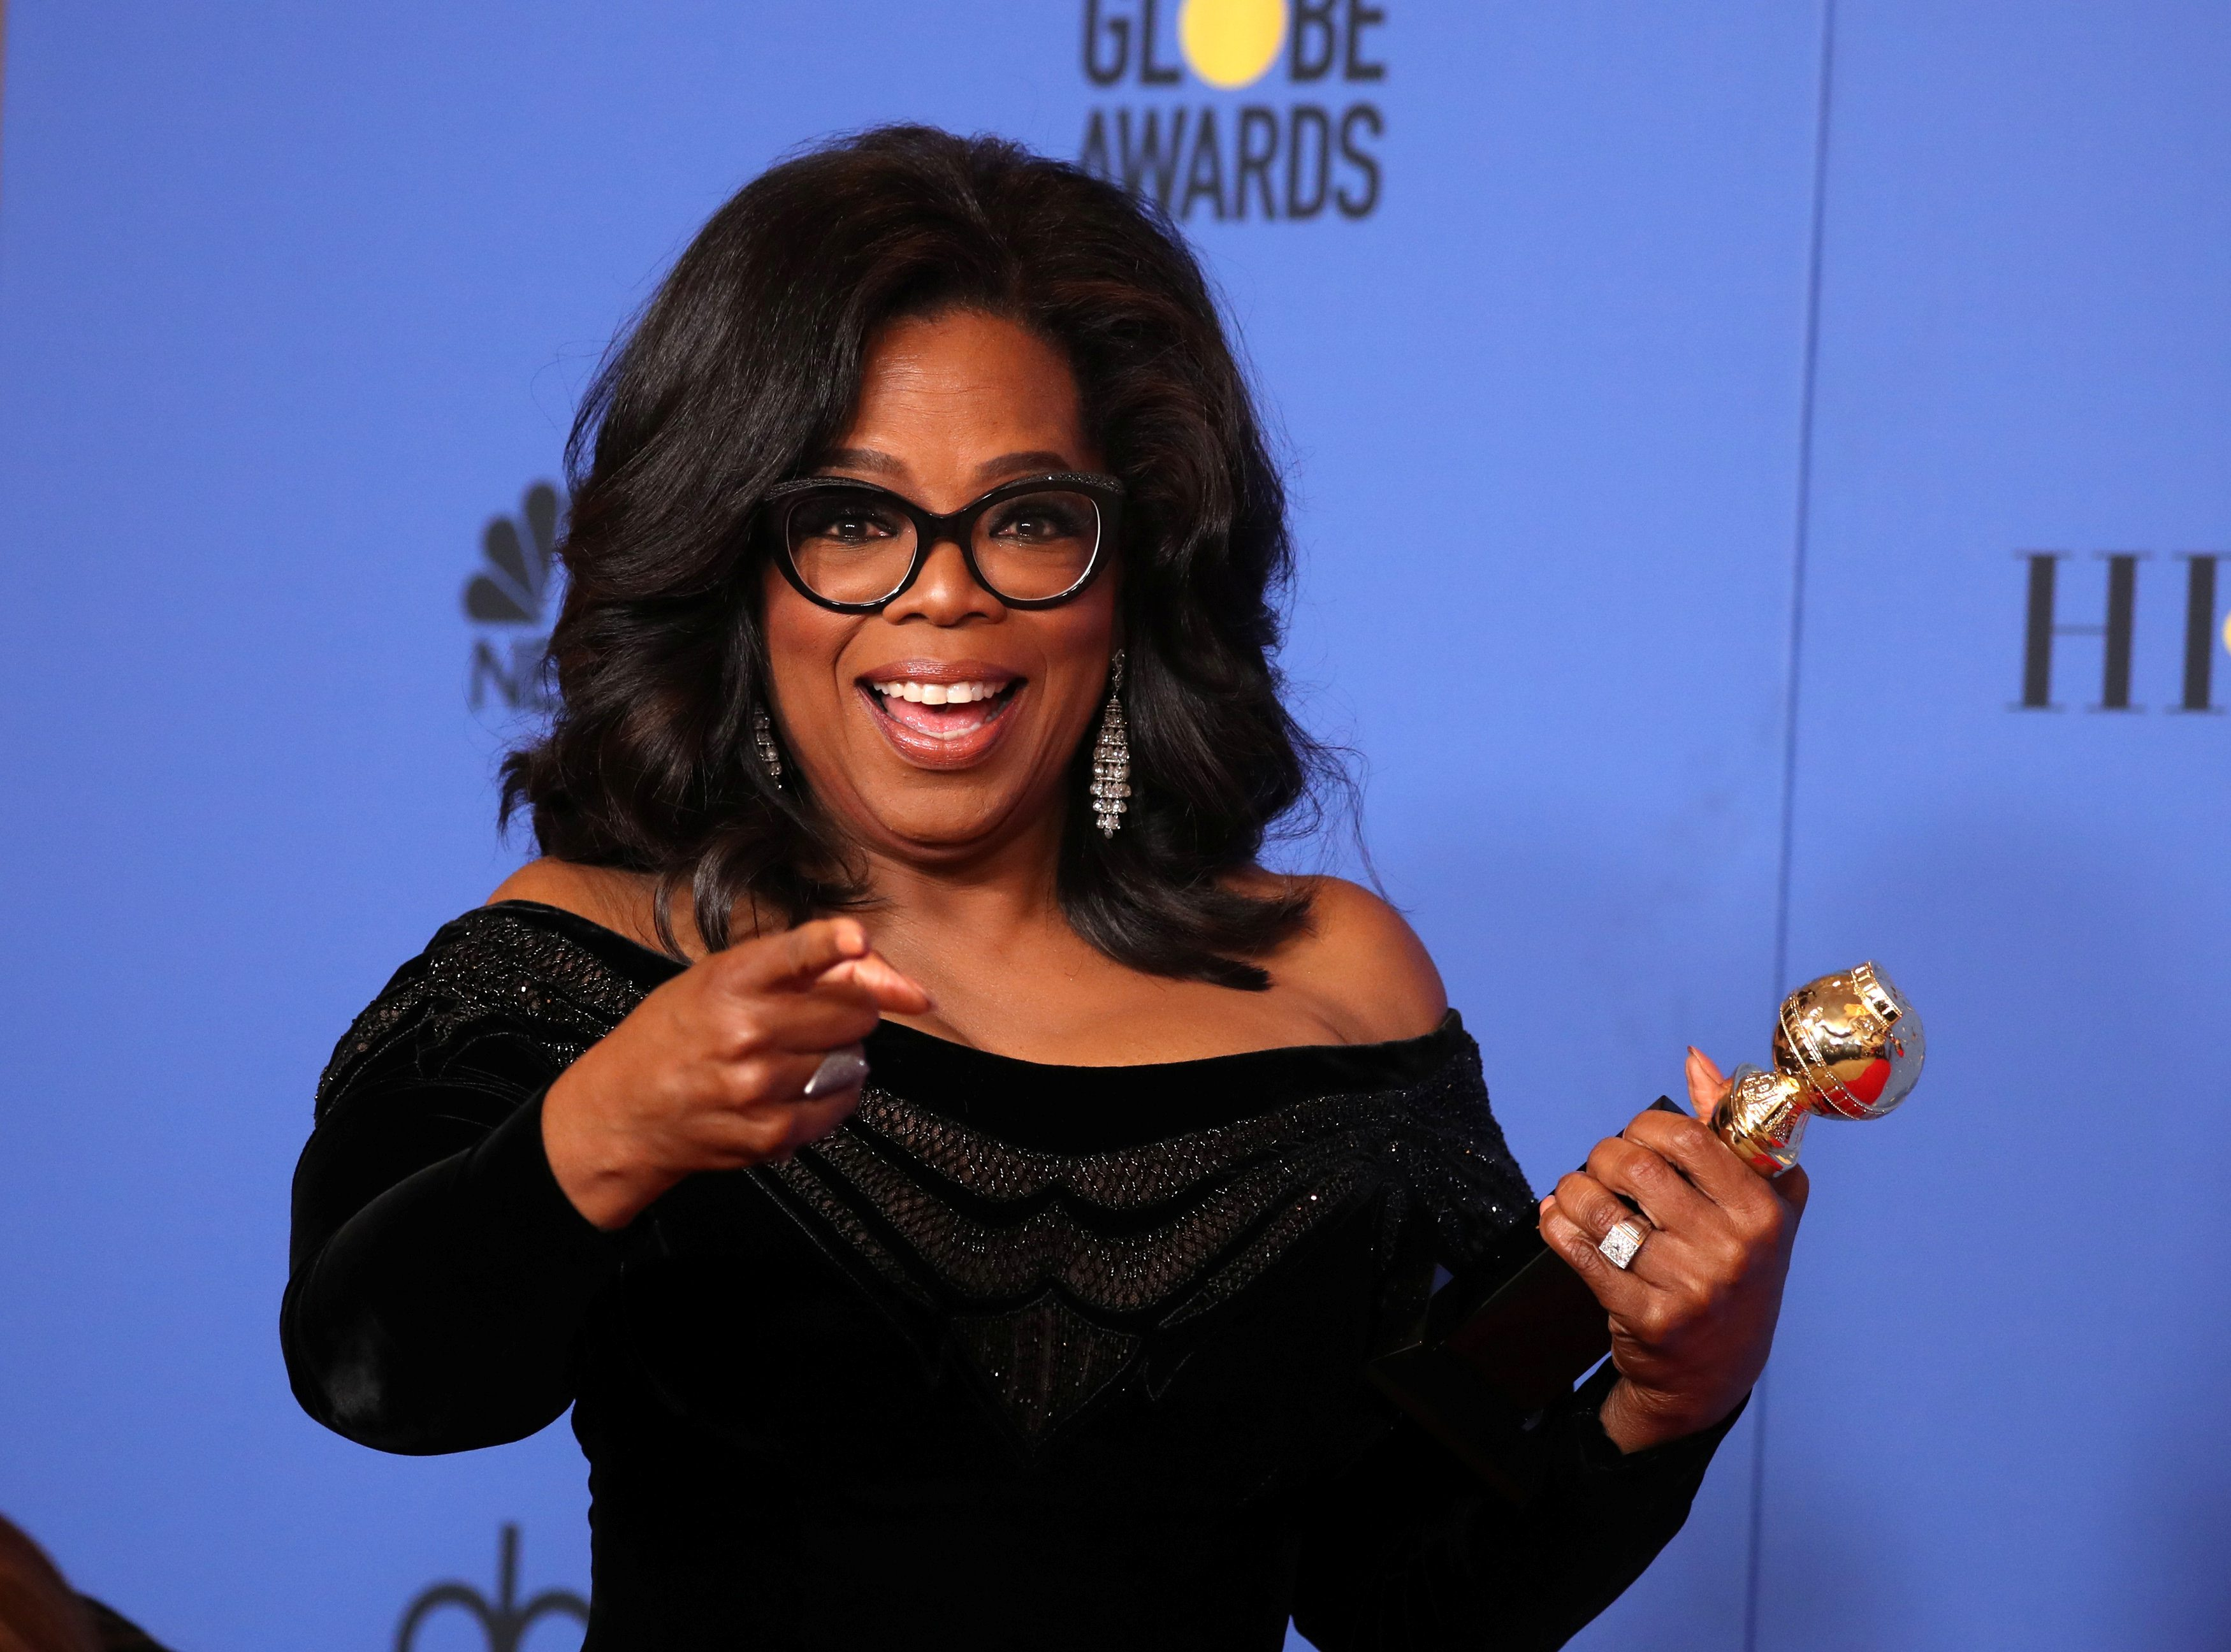 2018-01-08T090627Z_505938478_RC189D665B90_RTRMADP_3_AWARDS-GOLDENGLOBES